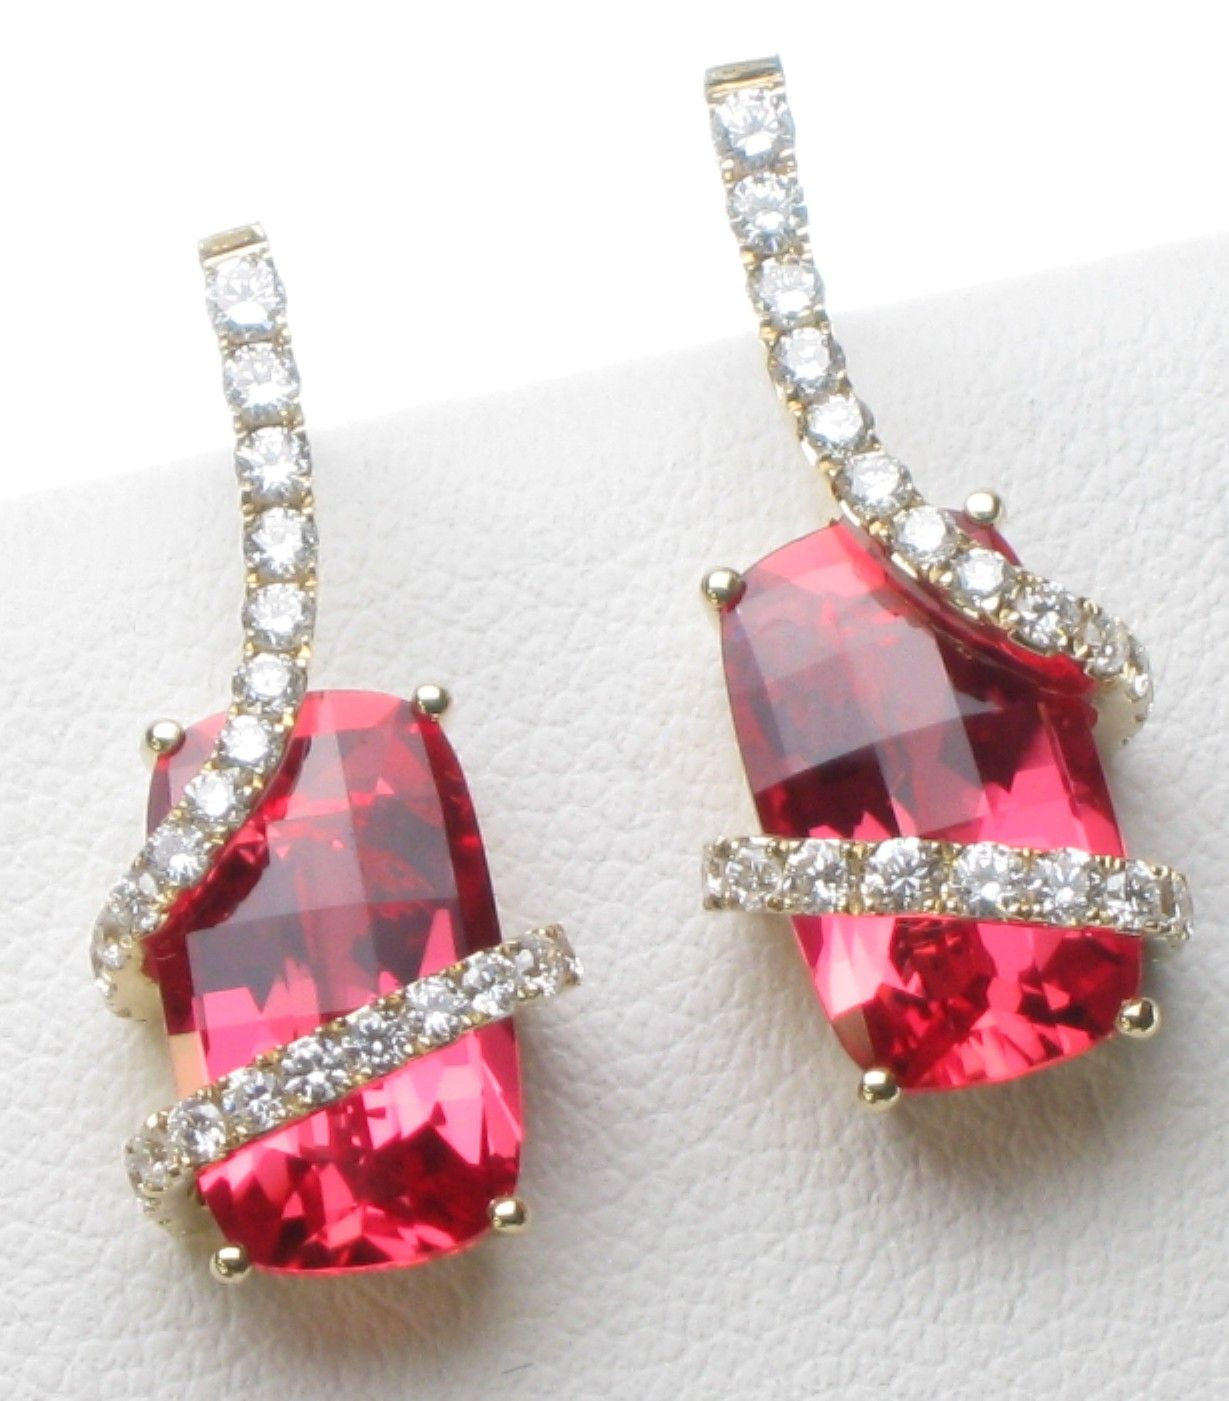 gallery weighing a at oval brilliant shoulders may shaped within christie kong with set pin magnificent jewels cut approximately surround from s hong diamond earrings the carats floral sapphire trifurcated auction motif padparadscha and an